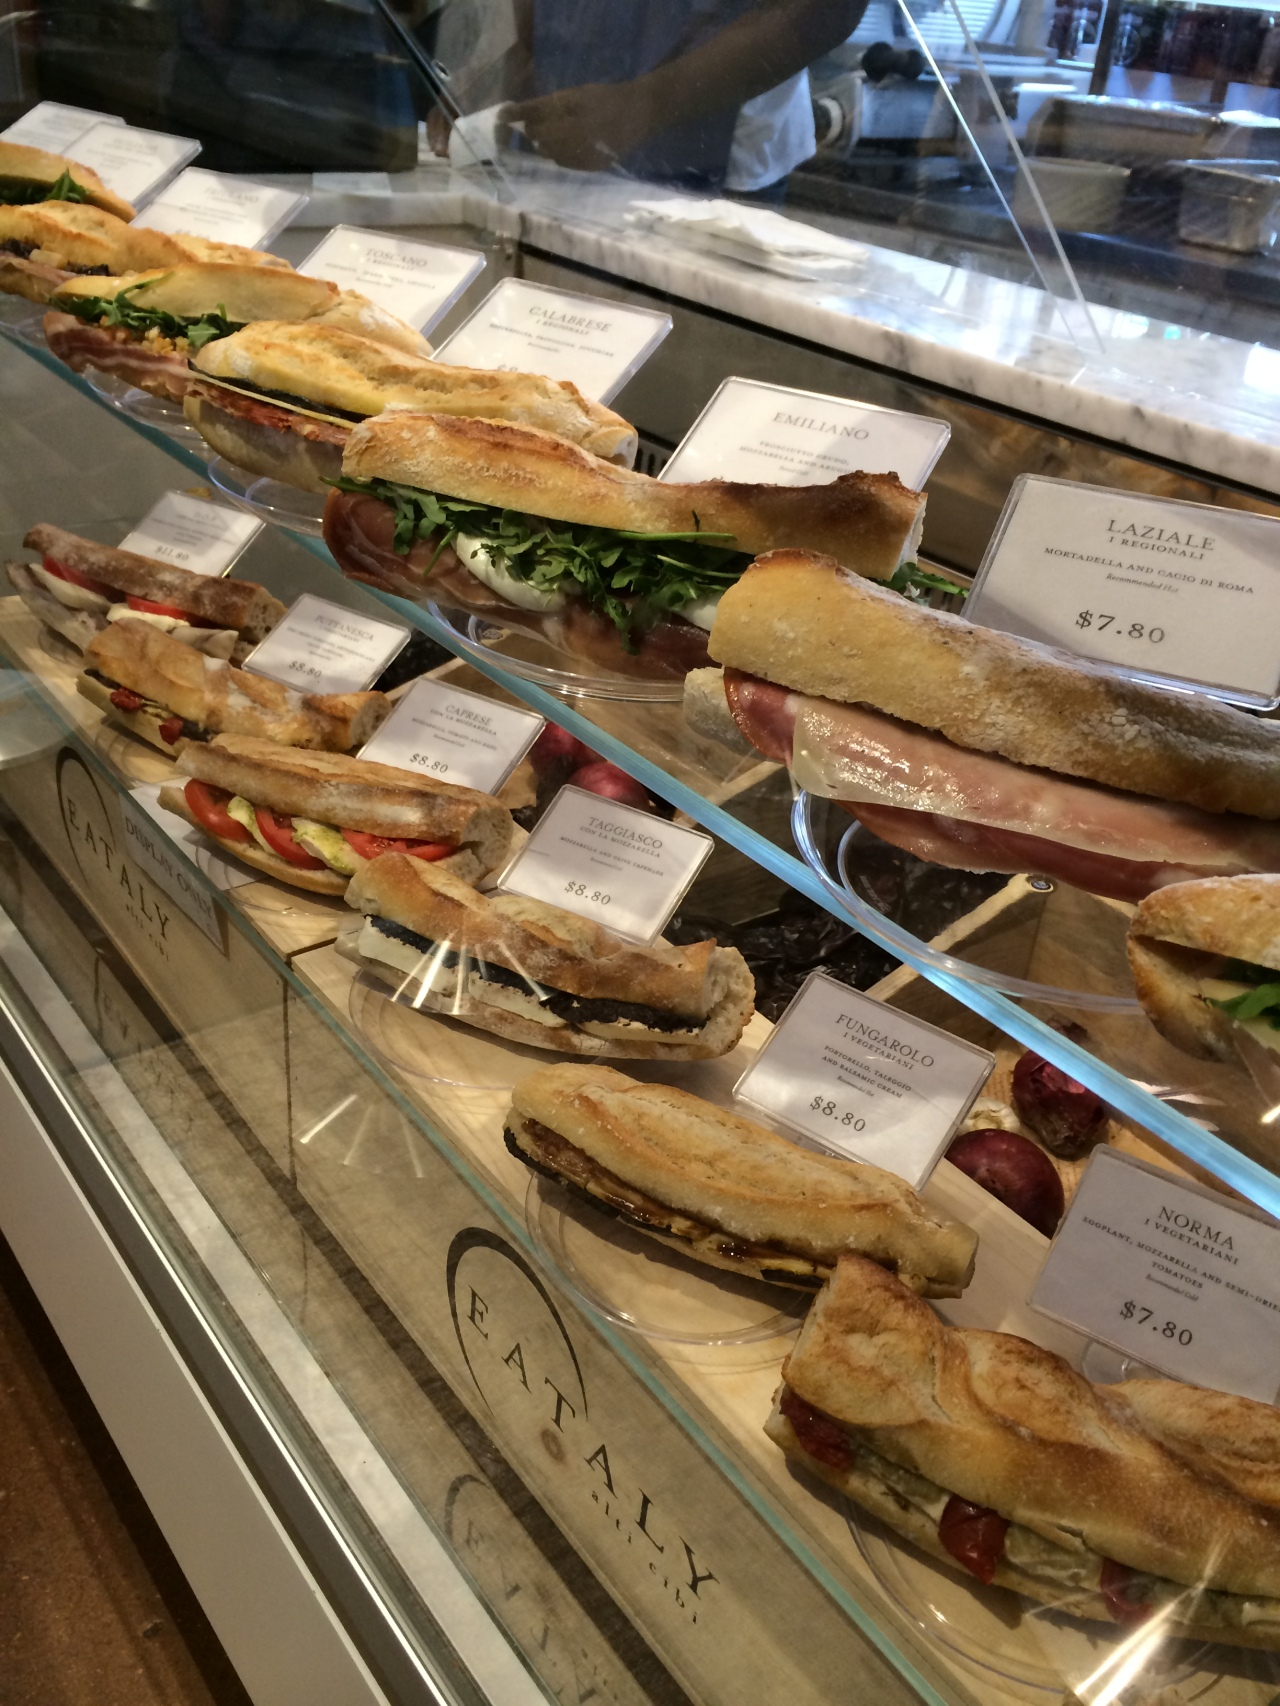 Grab a made to order sammie and a beverage for a quick lunch.